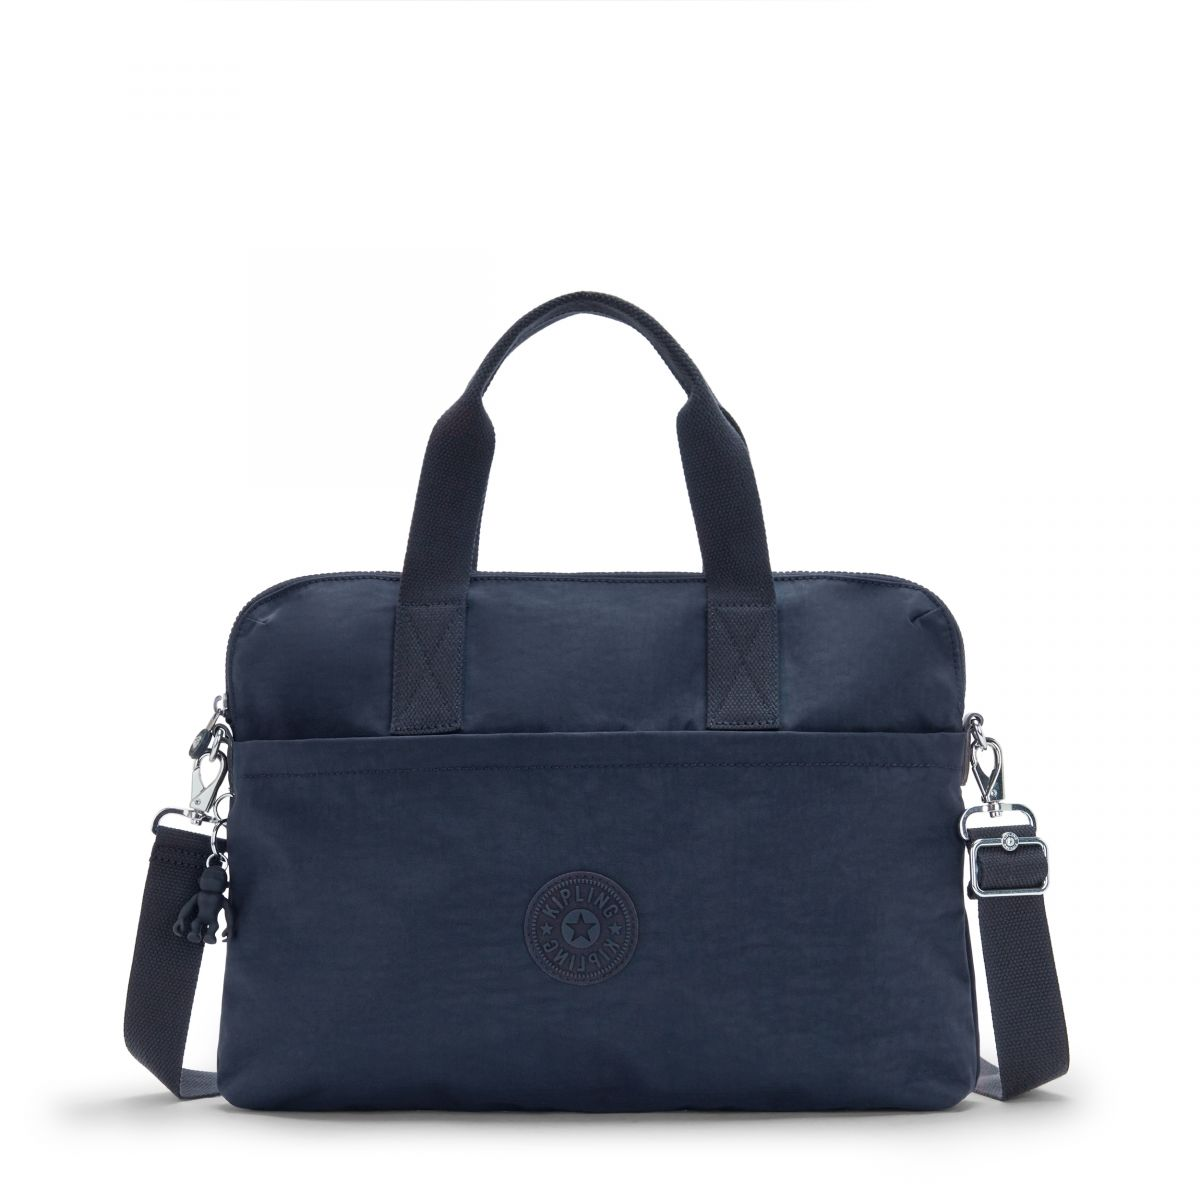 ELSIL NEW IN by Kipling - Front view